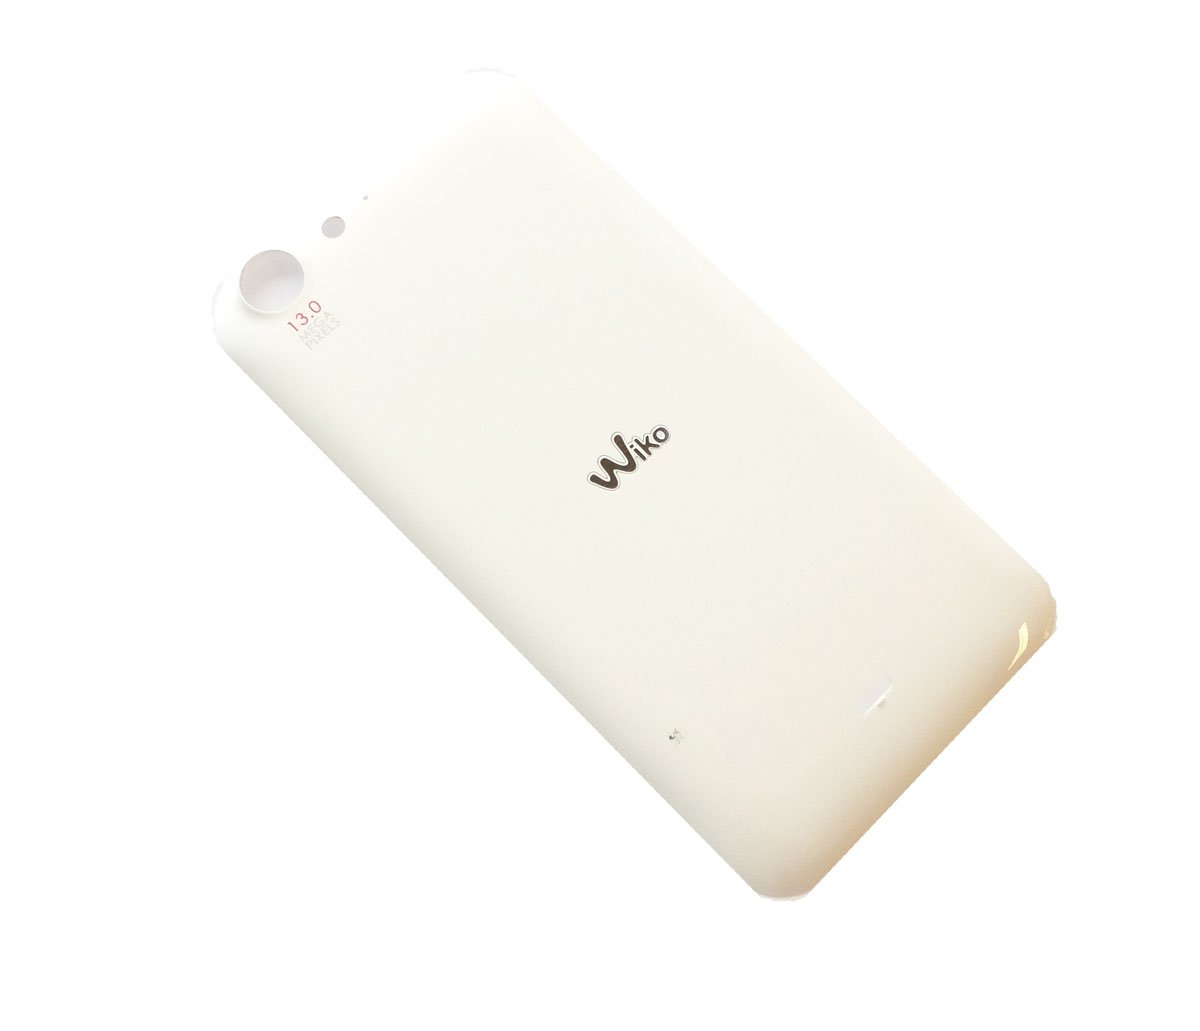 Cache batterie blanc pour Wiko Stairway